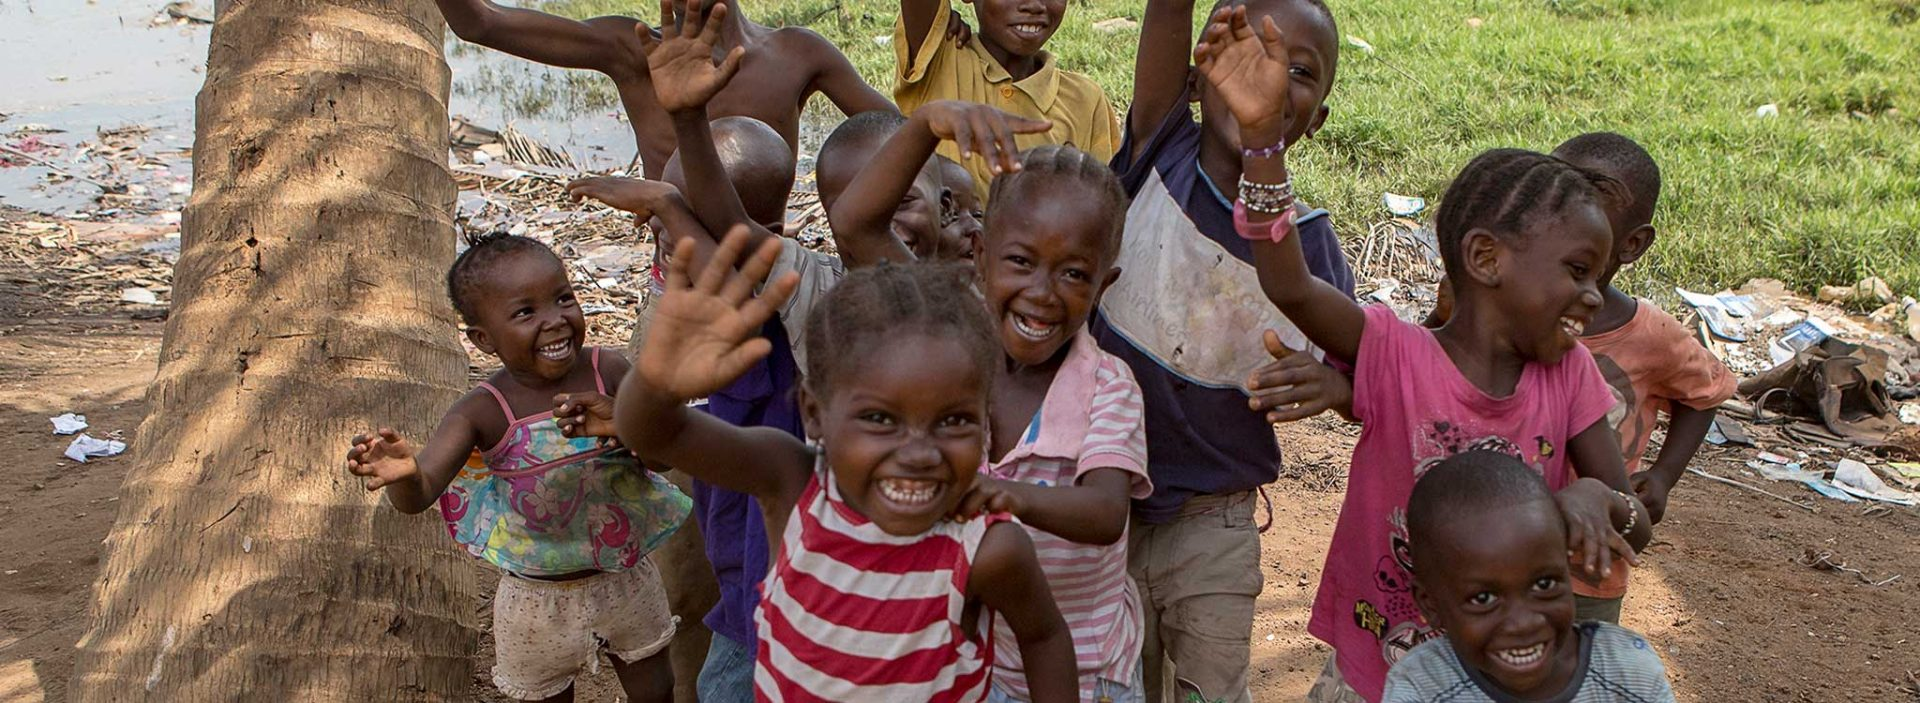 A group of children in Sierra Leone.